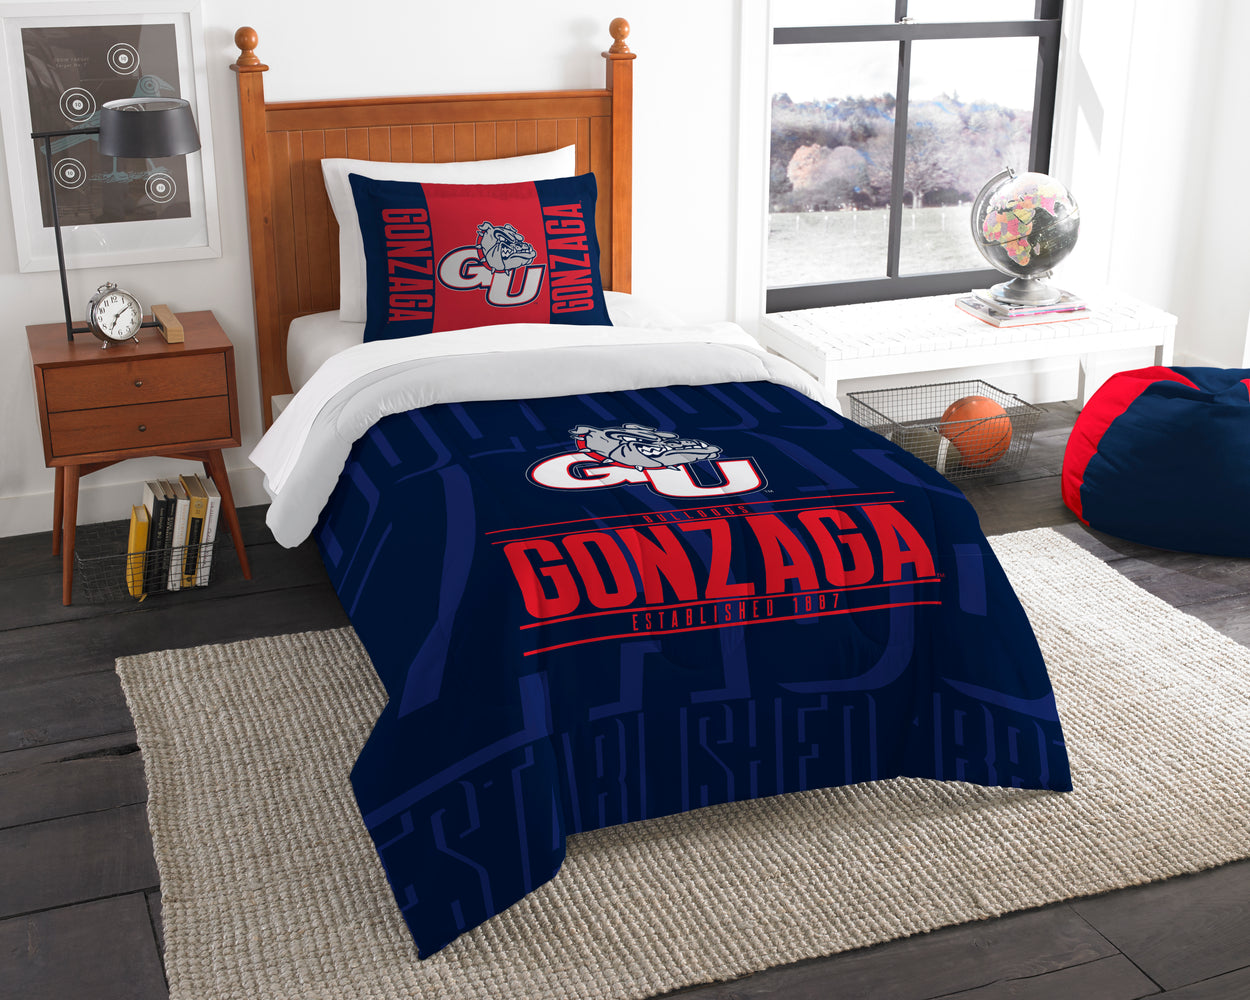 "Gonzaga OFFICIAL Collegiate, Bedding, """"Modern Take"""" Twin Printed Comforter (64""""x 86"""") & 1 Sham (24""""x 30"""") Set  by The Northwest Company"